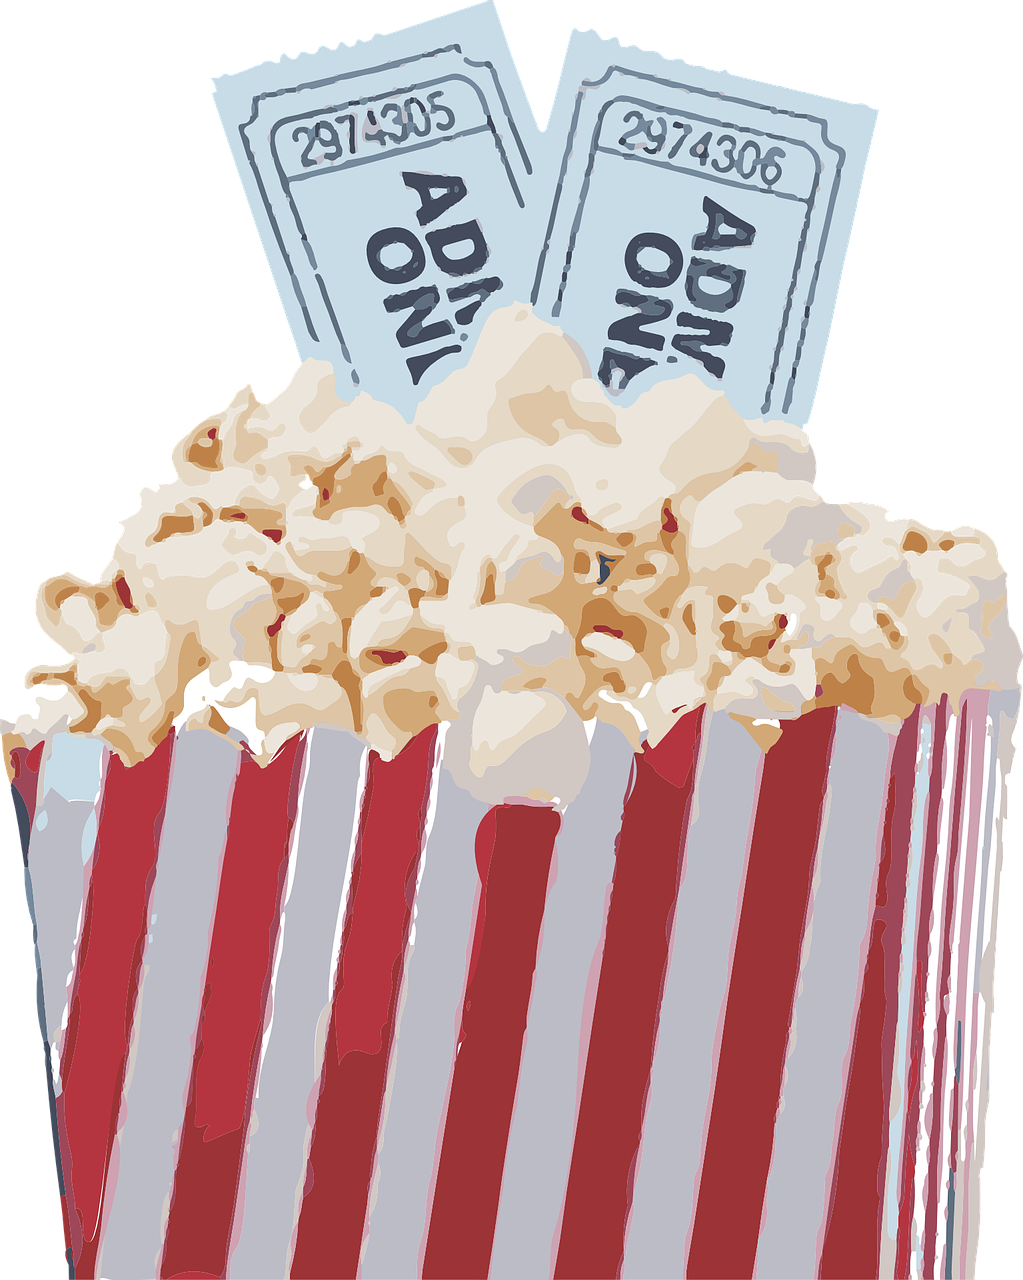 Movie Popcorn from Pixelbay